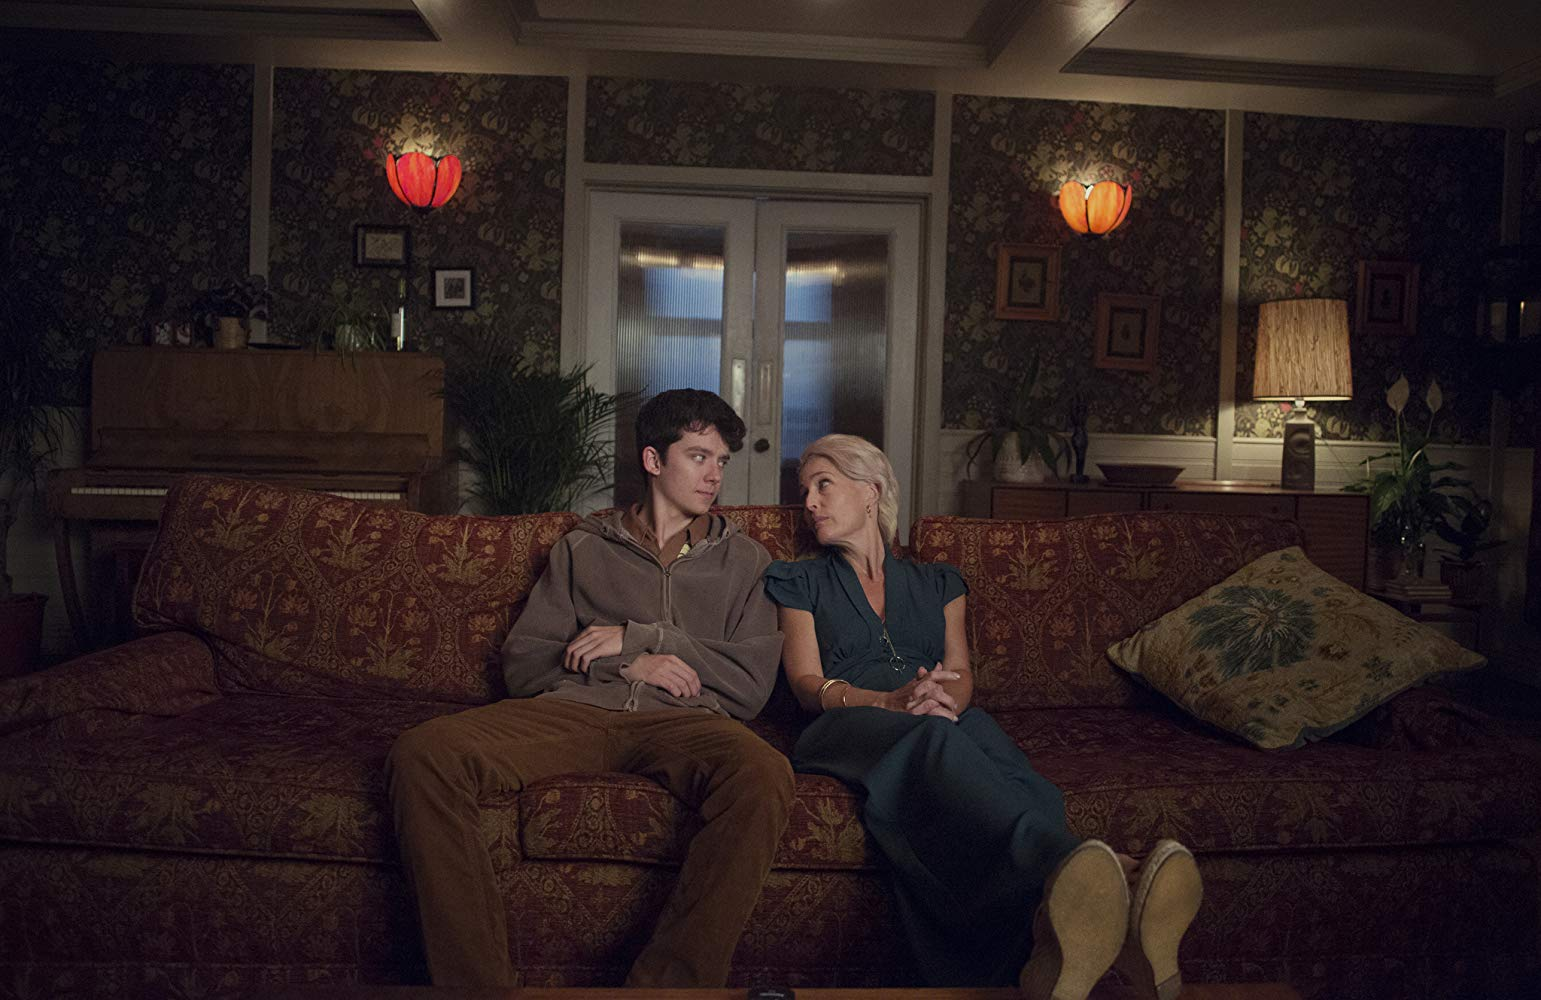 Asa Butterfield as Otis Milburn and Gillian Anderson as Jean Milburn in Sex Education. Courtesy of Netflix.